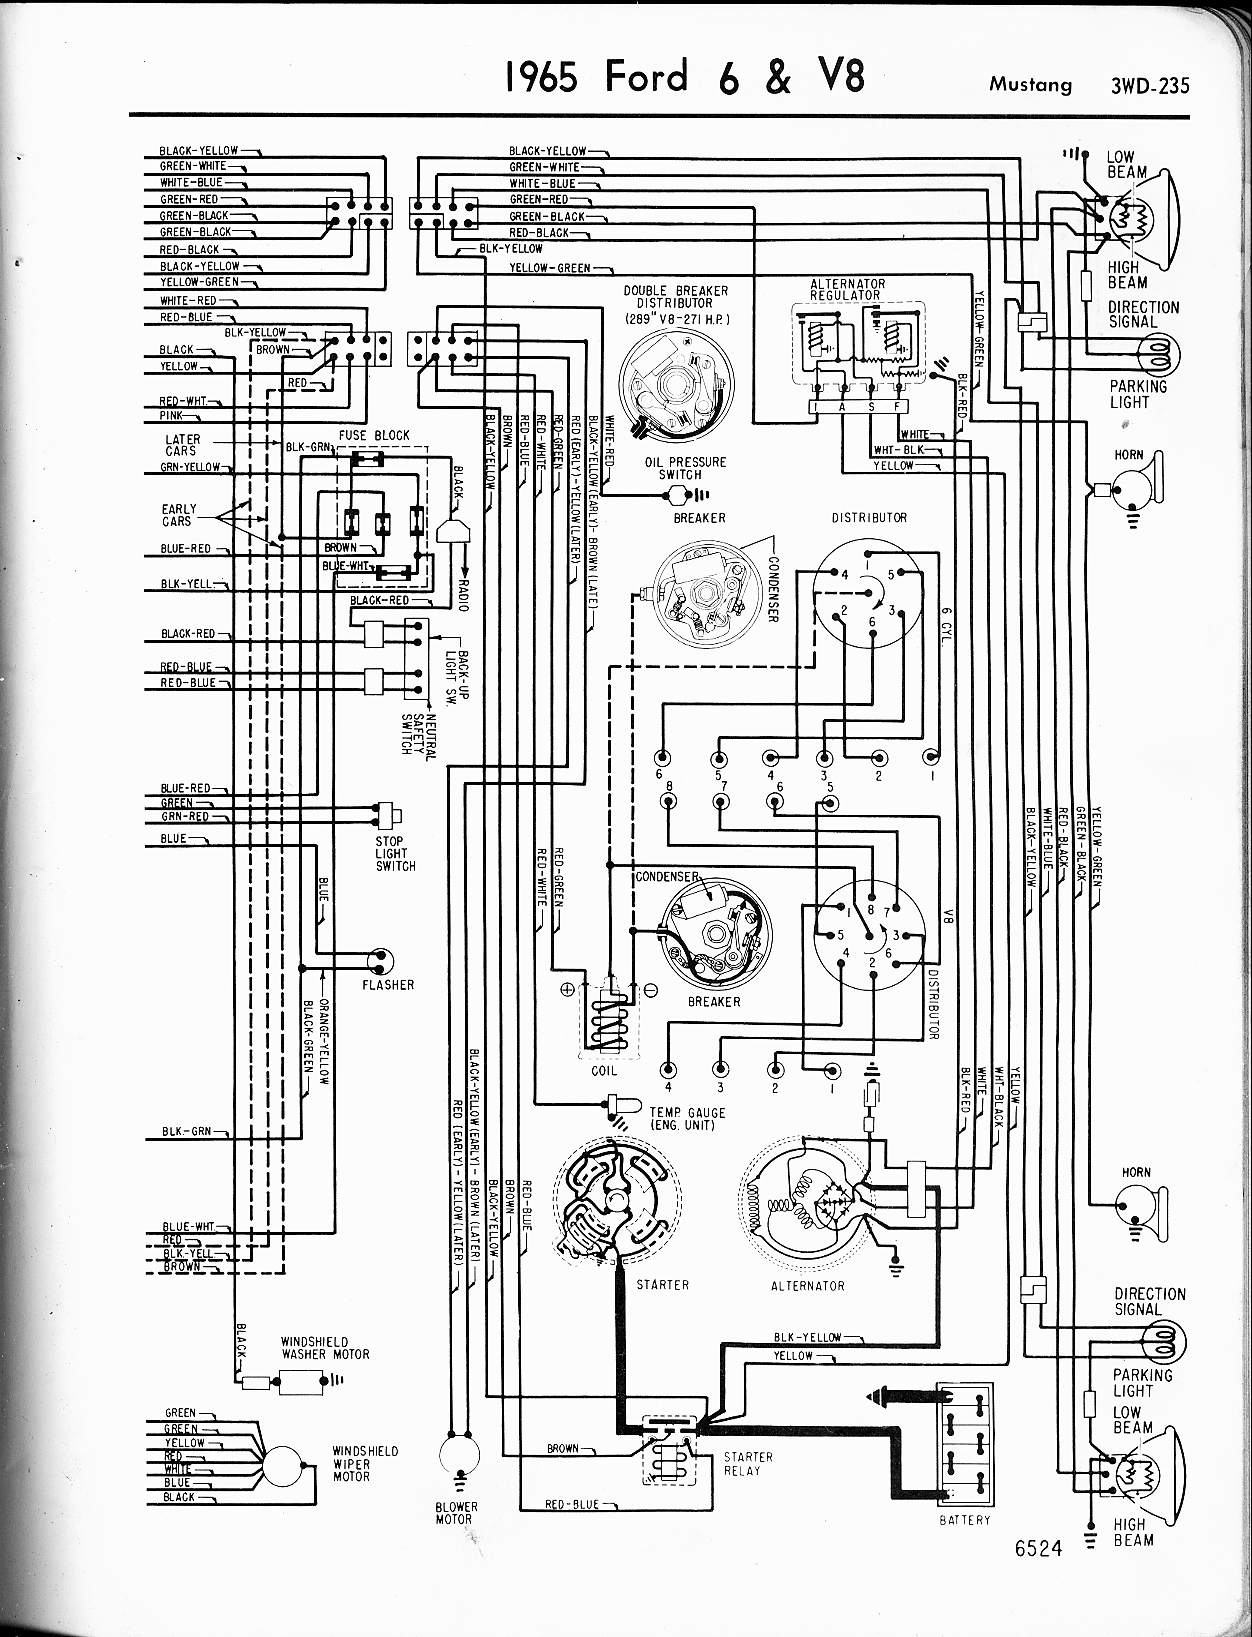 1994 Ford E350 Wiring Harness Library Diagrams 65 Mustang Diagram 2 Drawing B